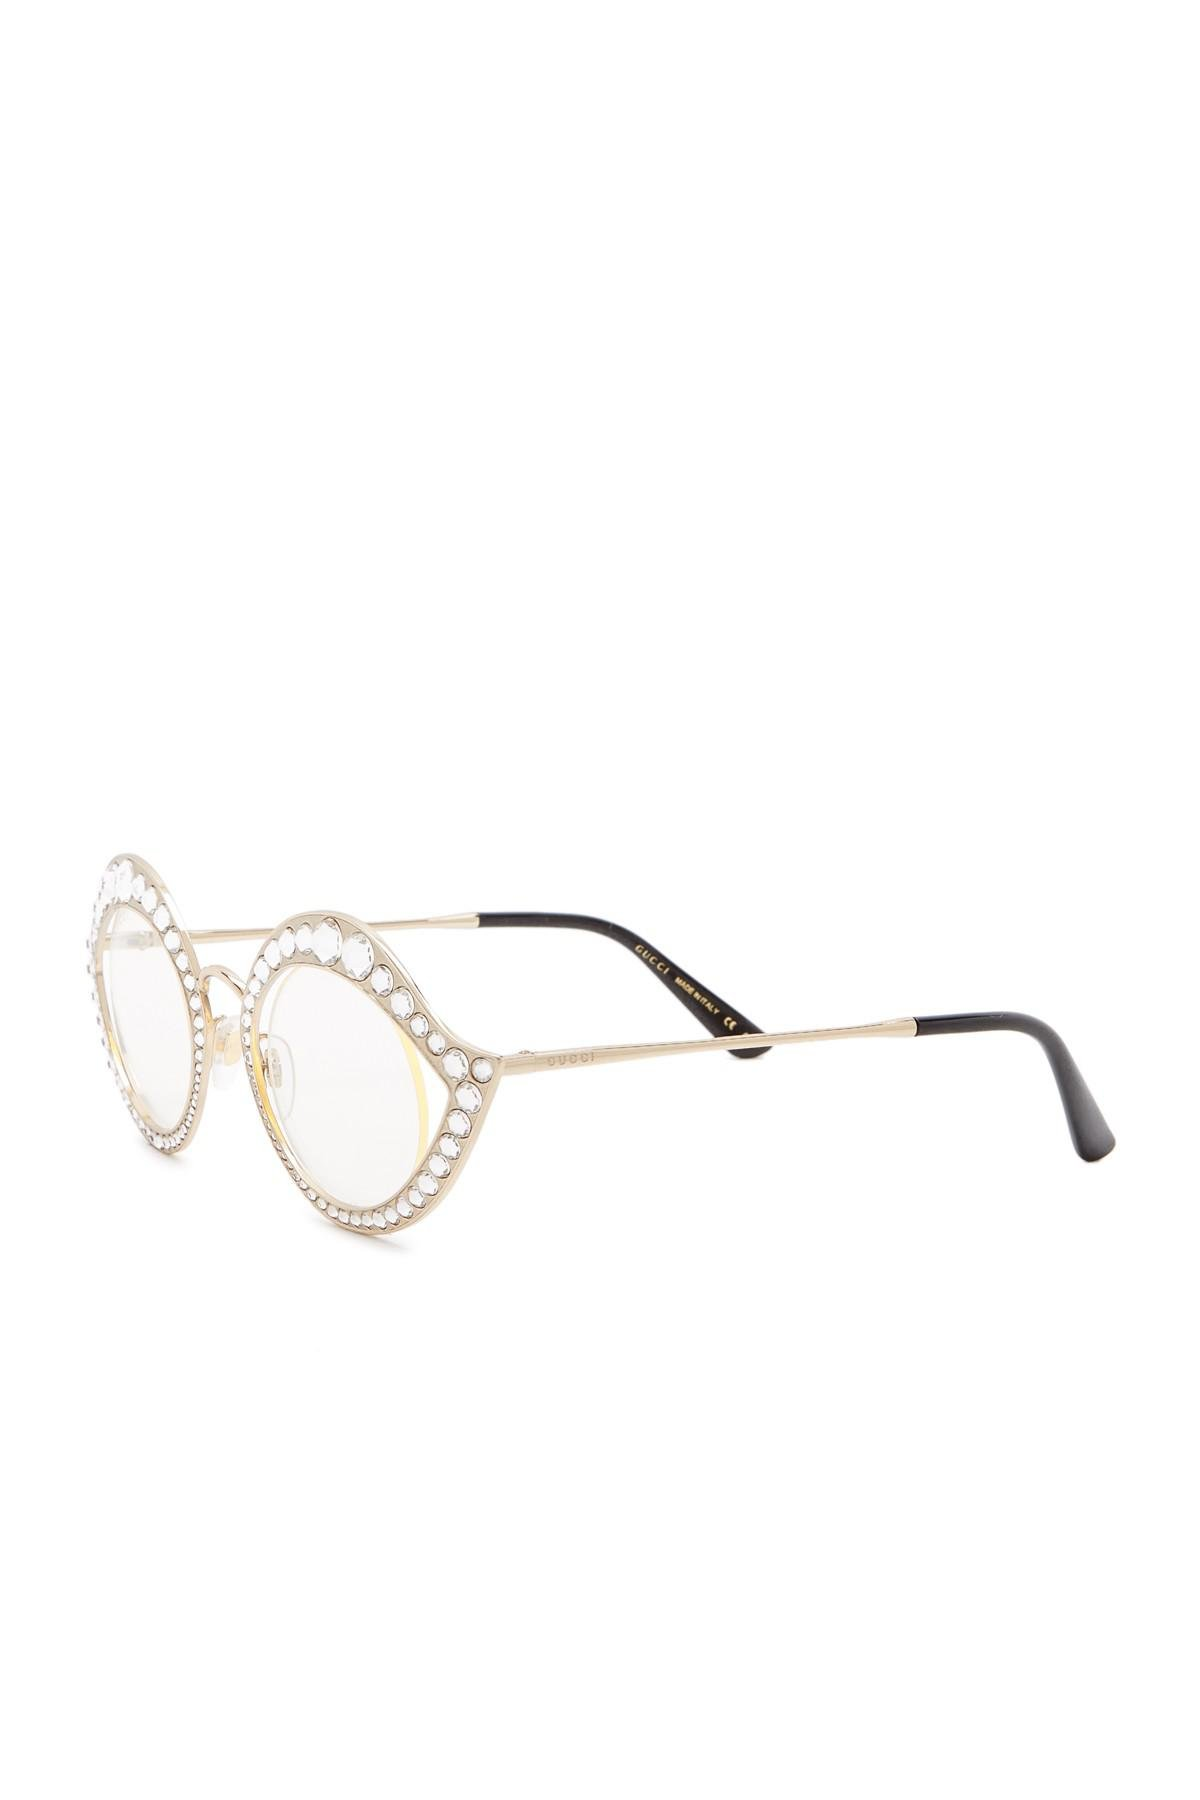 726ed6801f7 Lyst - Gucci Crystal-studded Cat Eye Glasses in Metallic